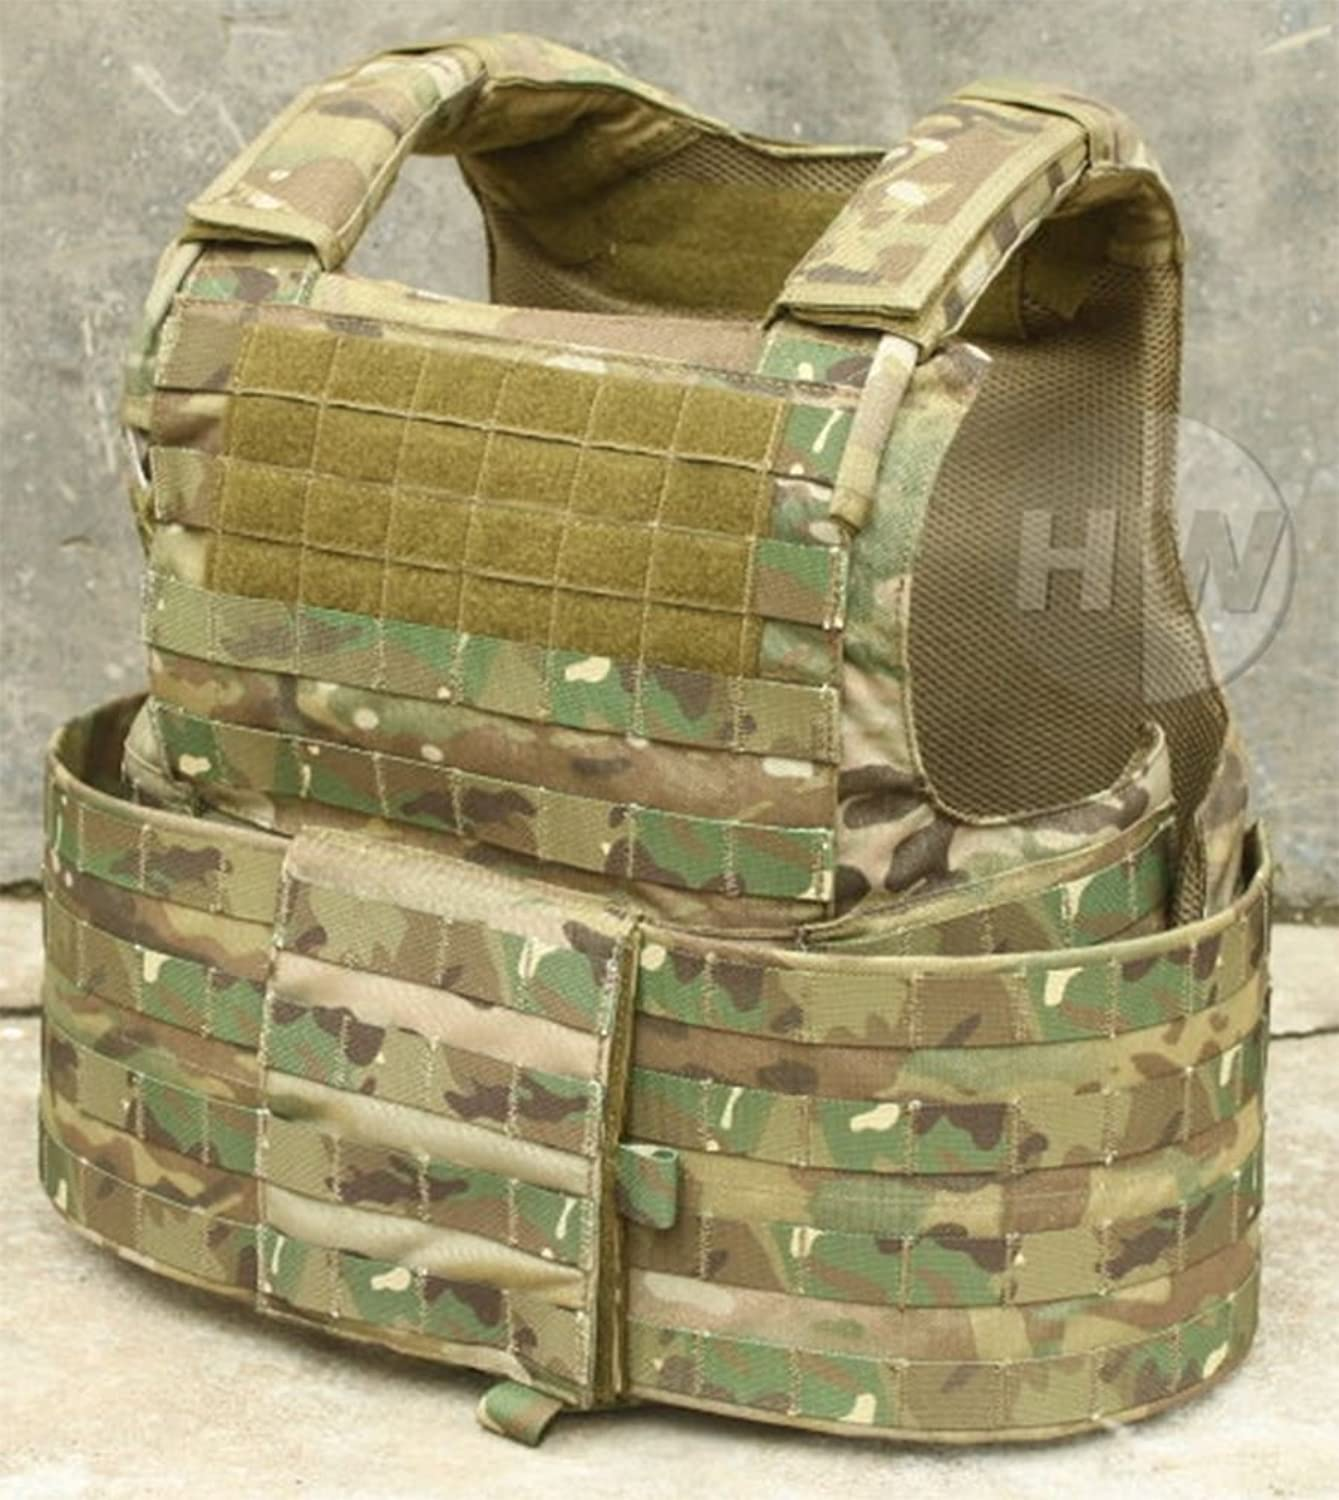 AIRSOFT CIR FORCE RECON ANGRIFF WESTE MOLLE BRUST RIG MULTICAM MTP PARACLETE RAV jetzt bestellen